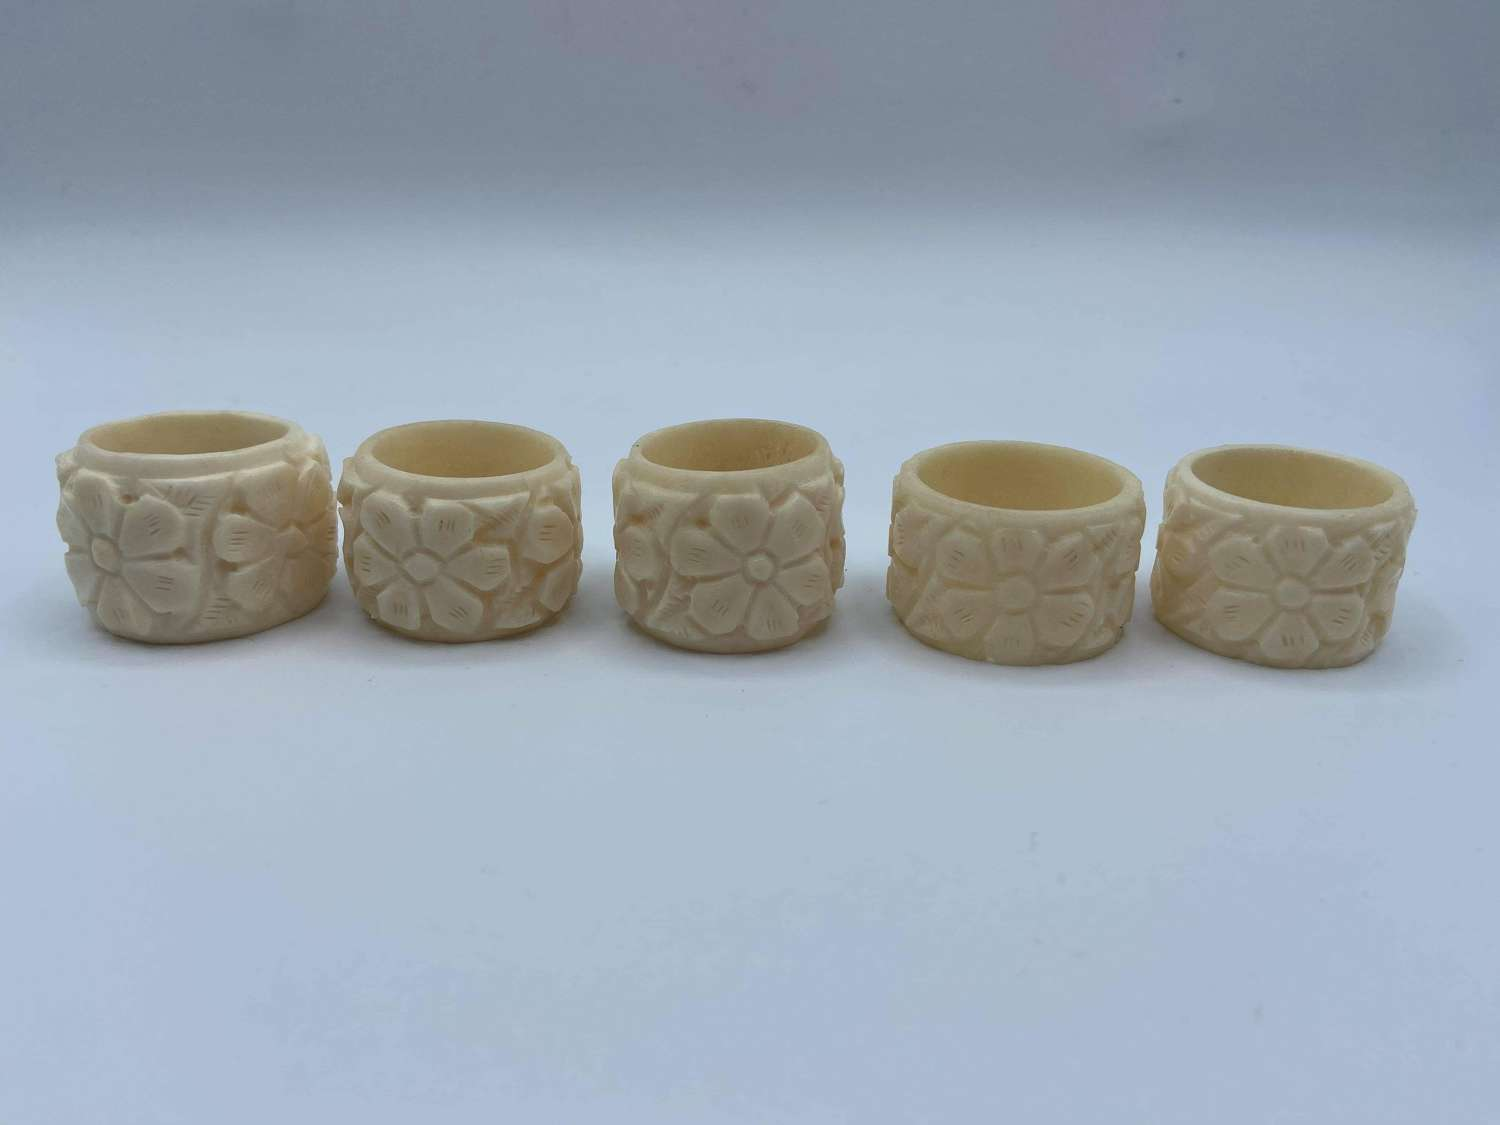 Antique Art Nouveau Floral Carved Cow Bone Nspkin Rings Set Of 5